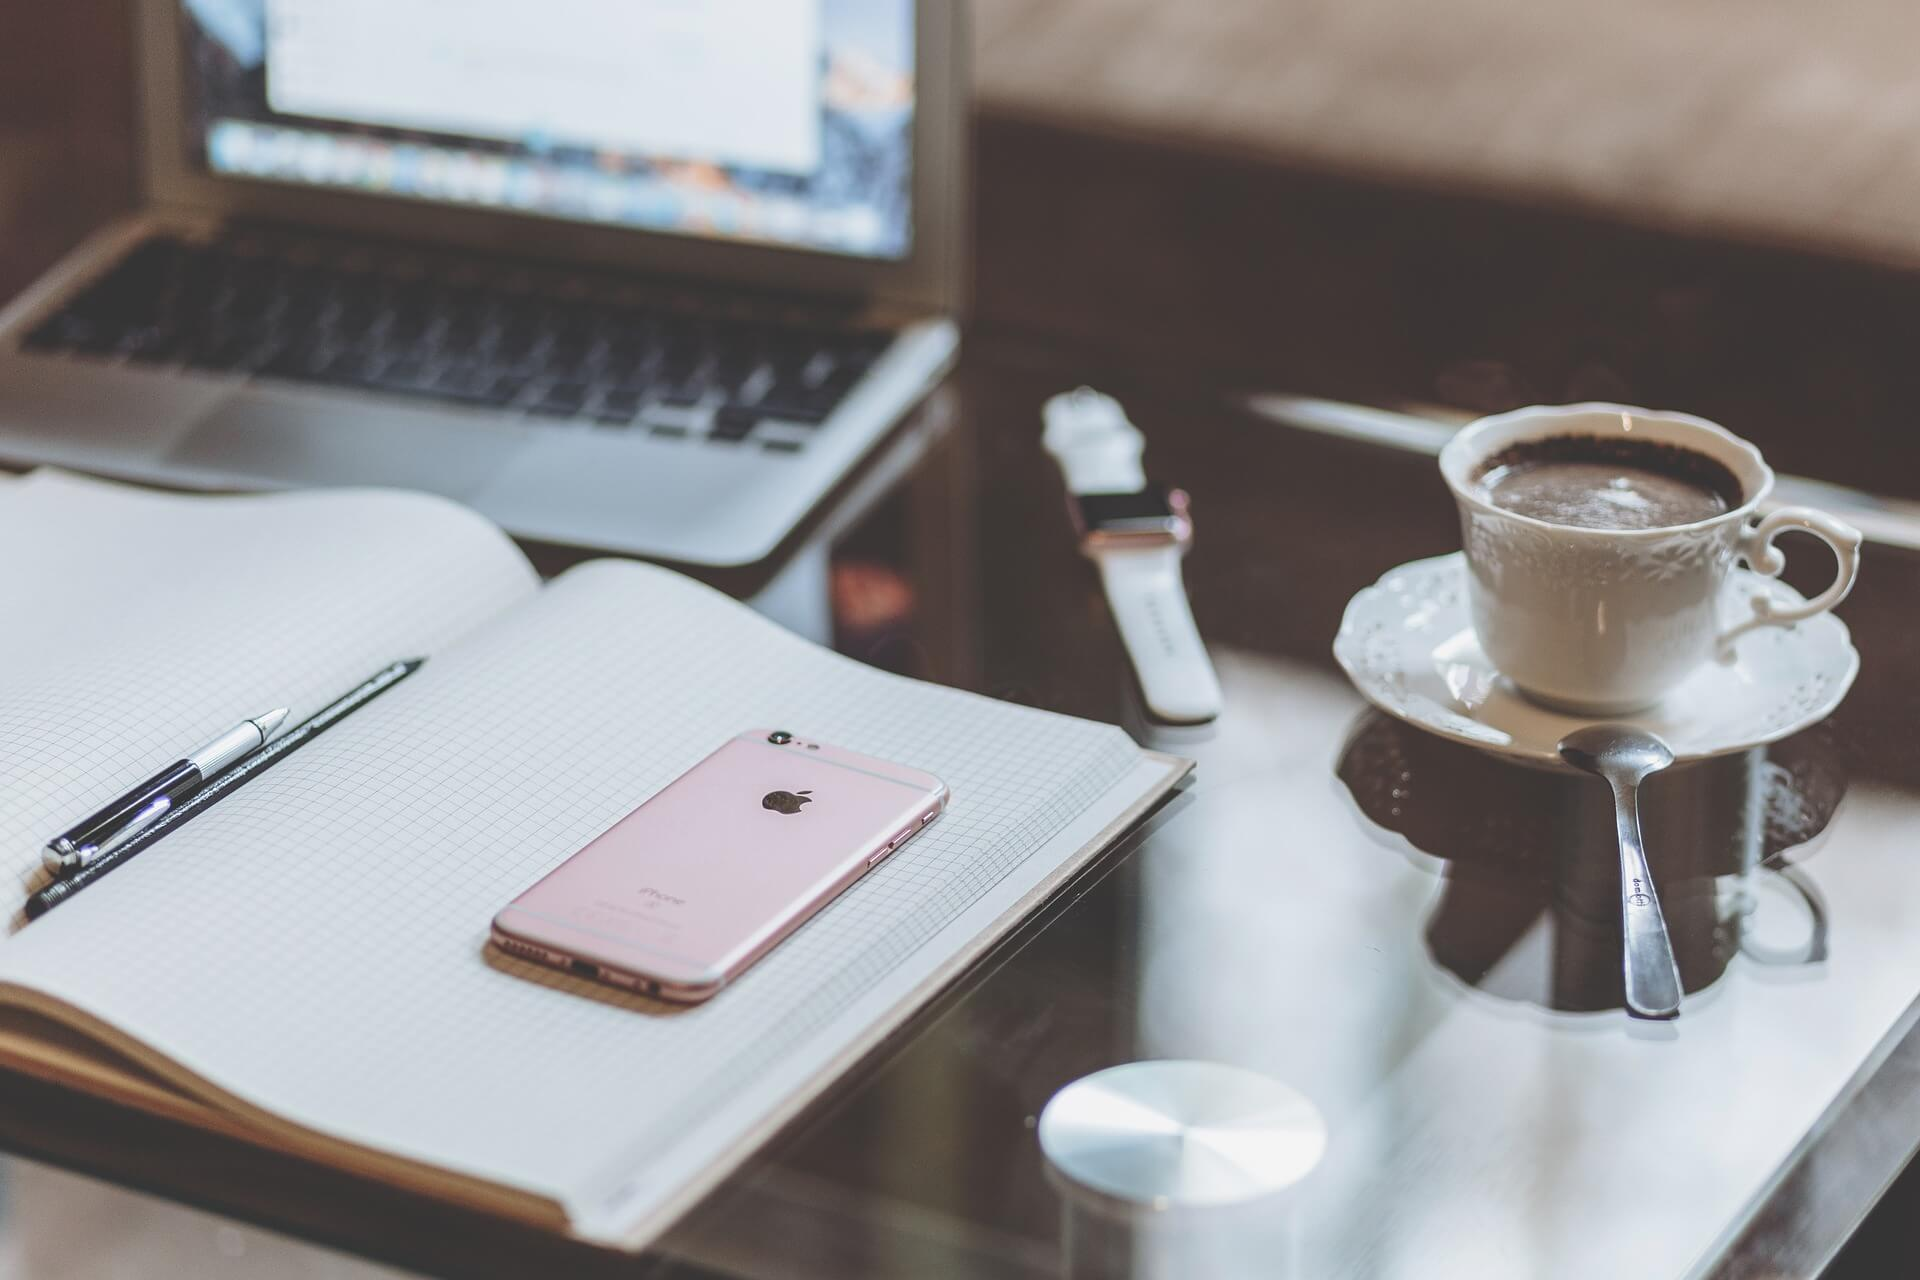 touchid-scan-fingerprint2-20130910